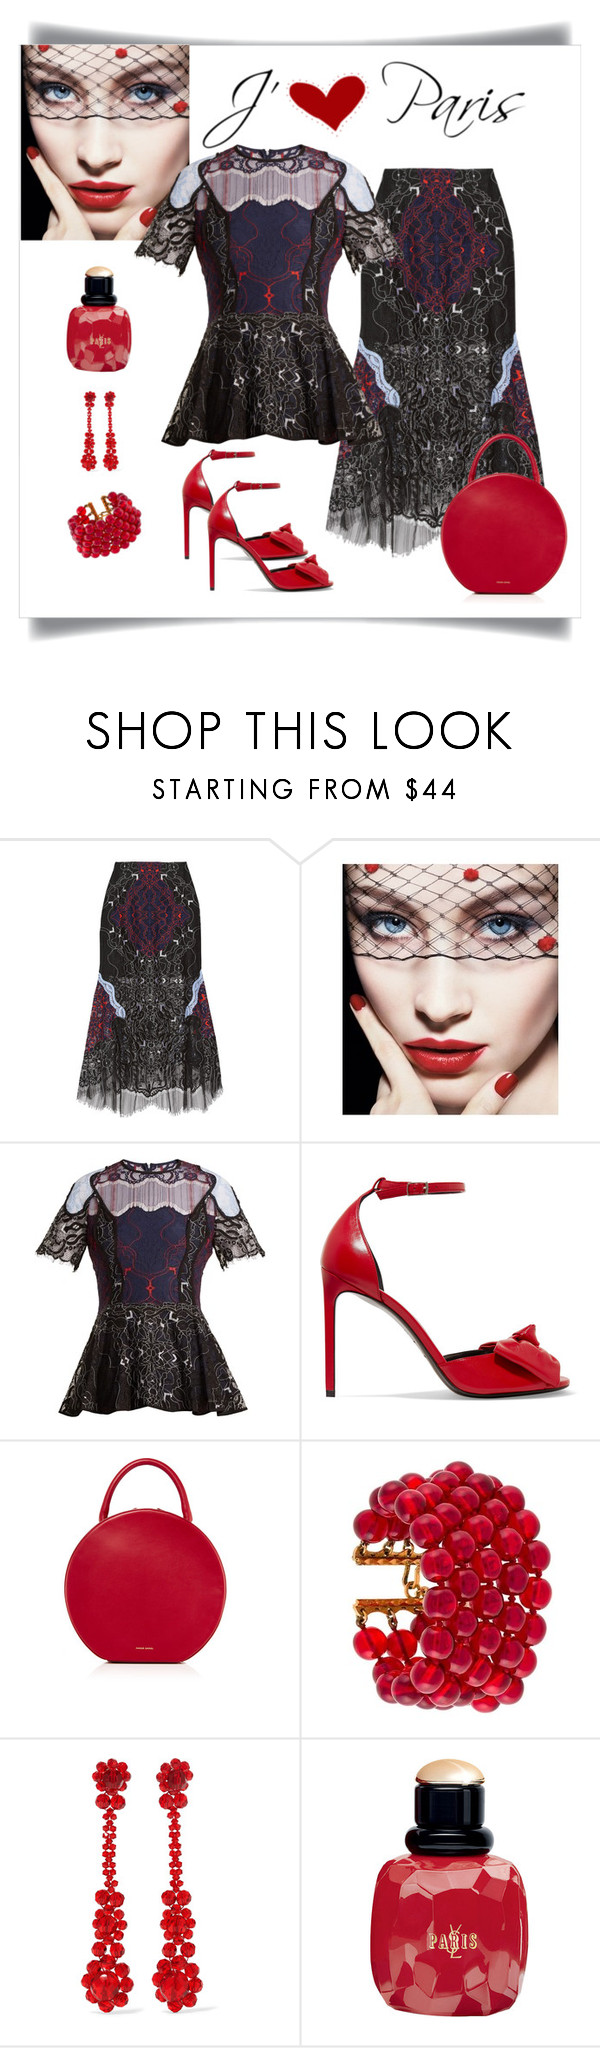 """""""Jonathan Simkhai Tri-Colour Embroidered Lace Top & Skirt"""" by romaboots-1 ❤ liked on Polyvore featuring Jonathan Simkhai, Giorgio Armani, Yves Saint Laurent, Mansur Gavriel, Chanel and Simone Rocha"""